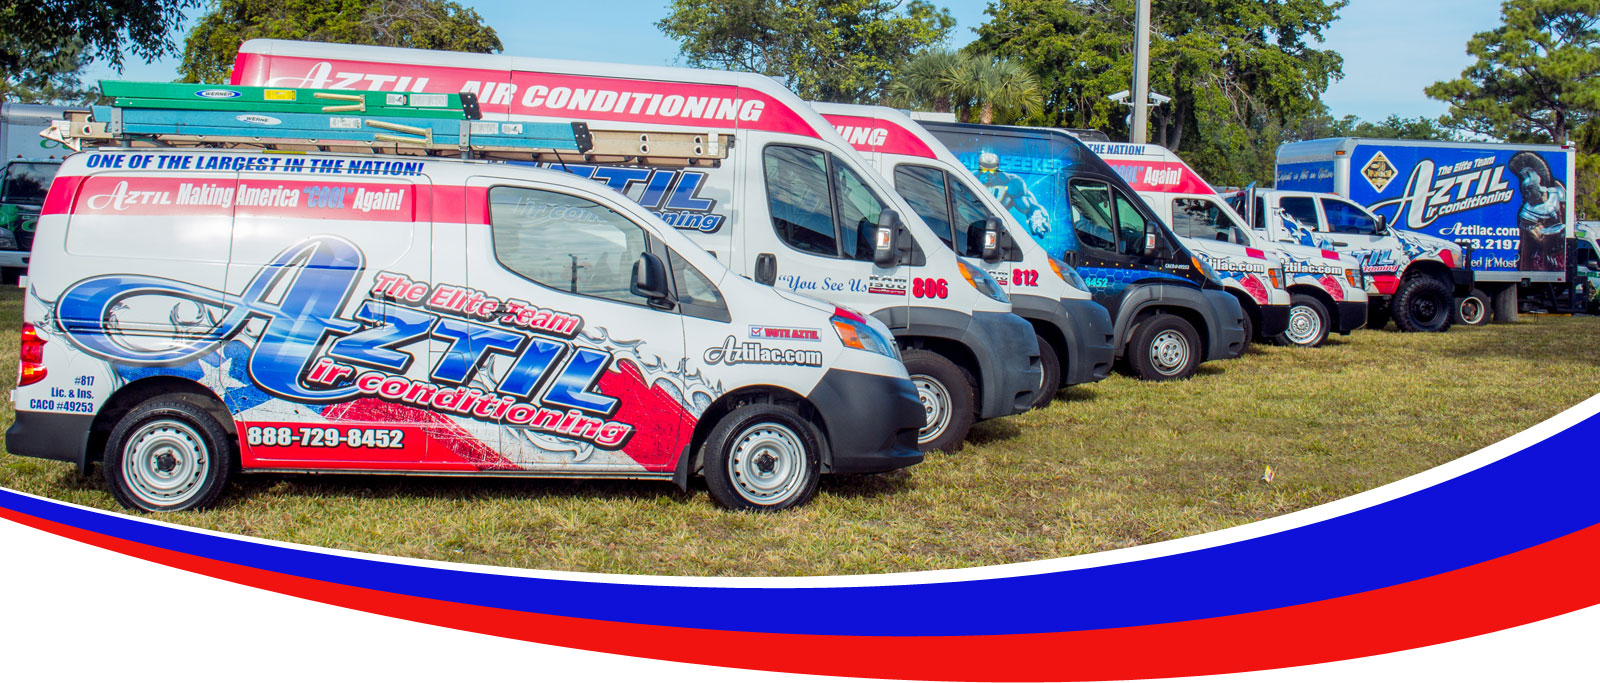 Air Conditioning Company in West Palm Beach